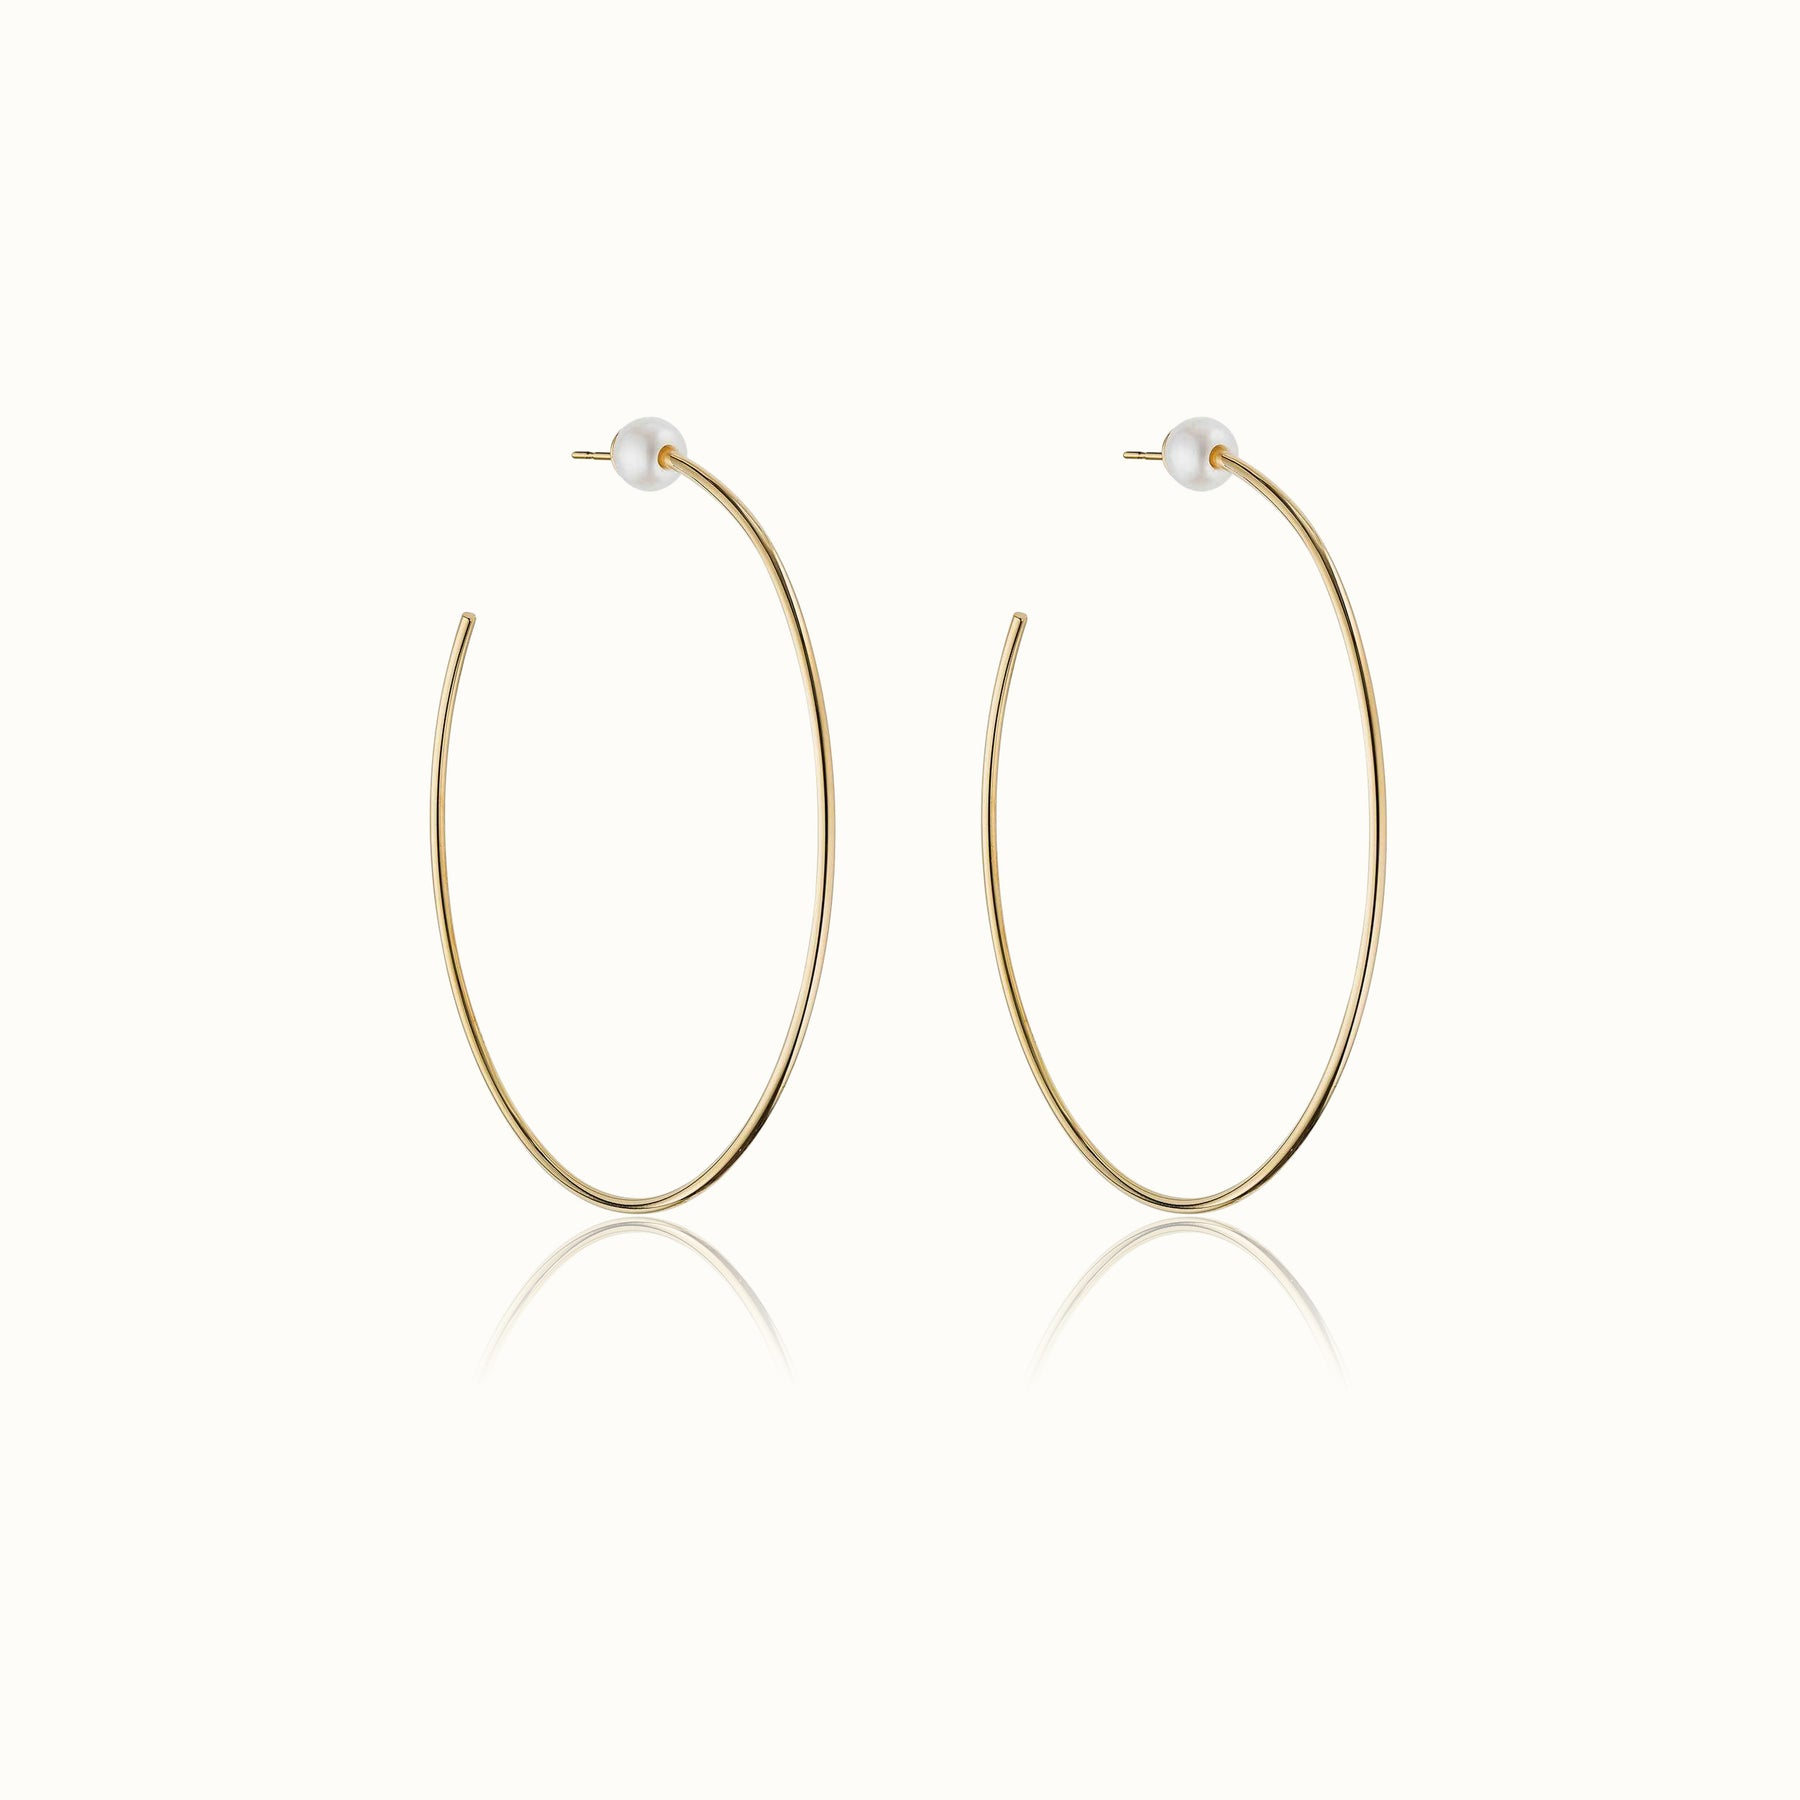 Sfera Pearl Hoop Earrings 2.6